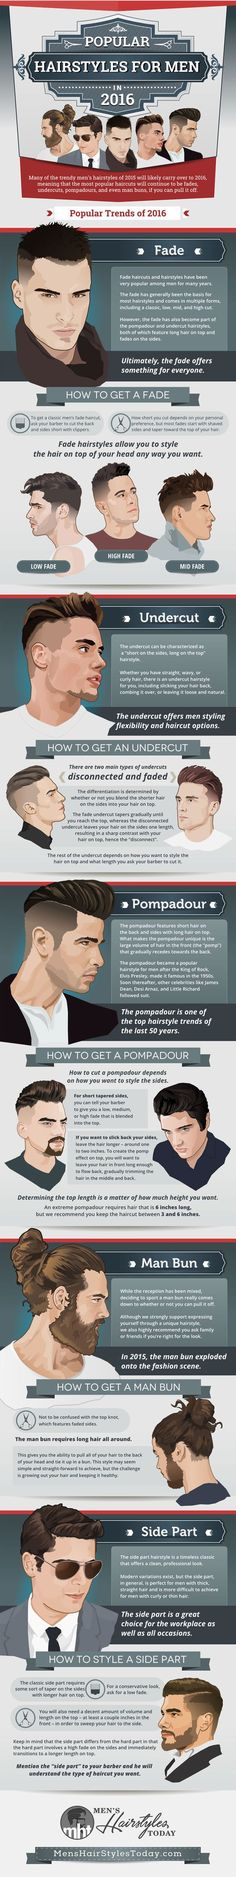 Top Men's Hairstyles In 2016:                                                                                                                                                                                 More